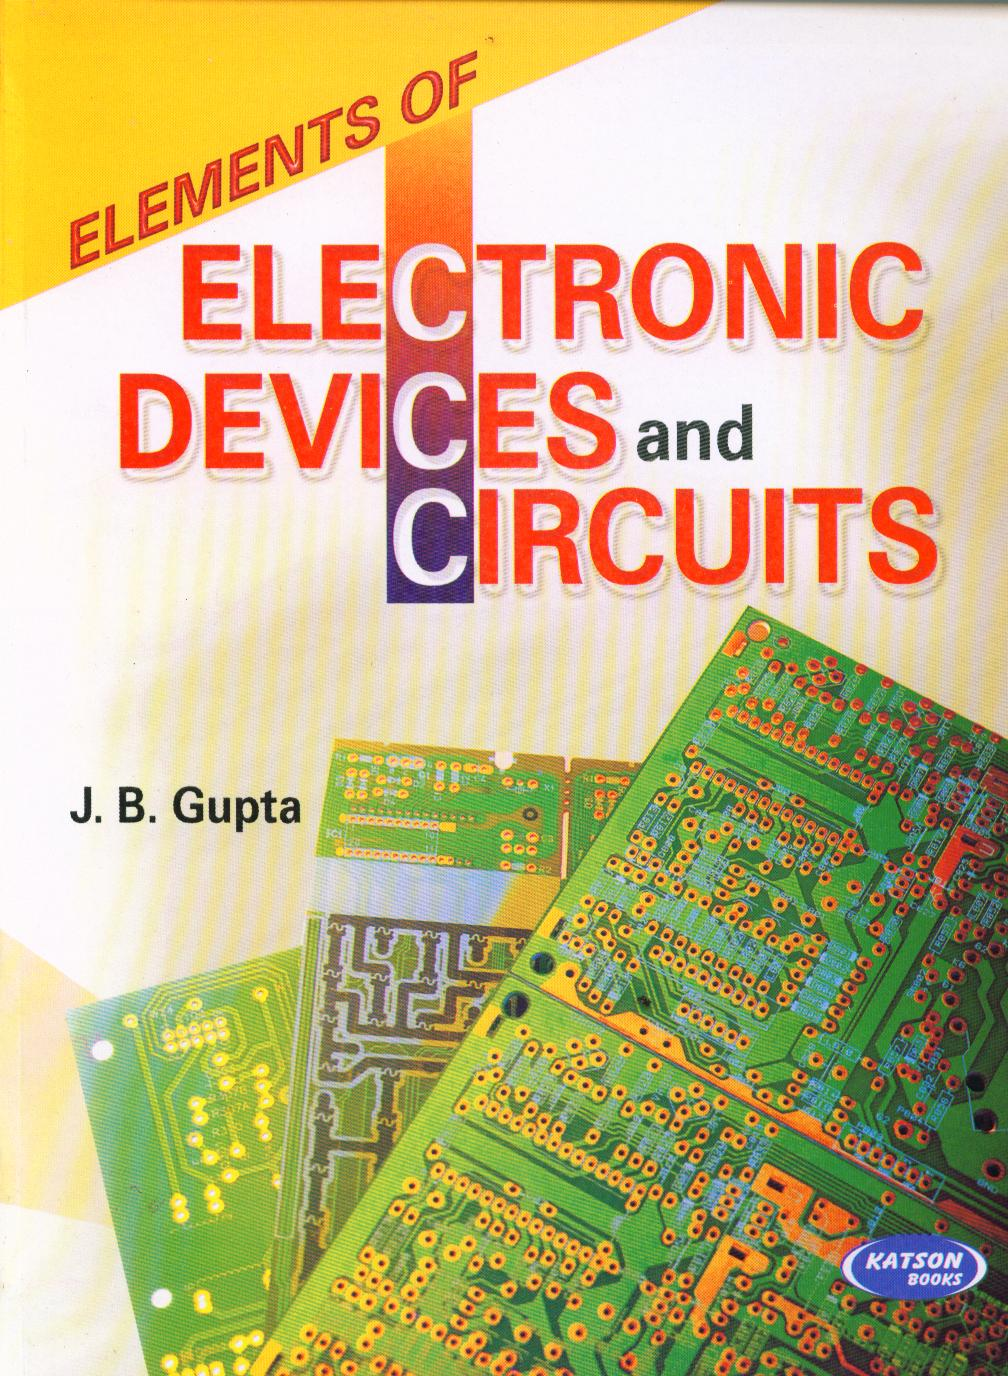 buy elements of electronic devices and circuit book j b guptaelements of electronic devices and circuit